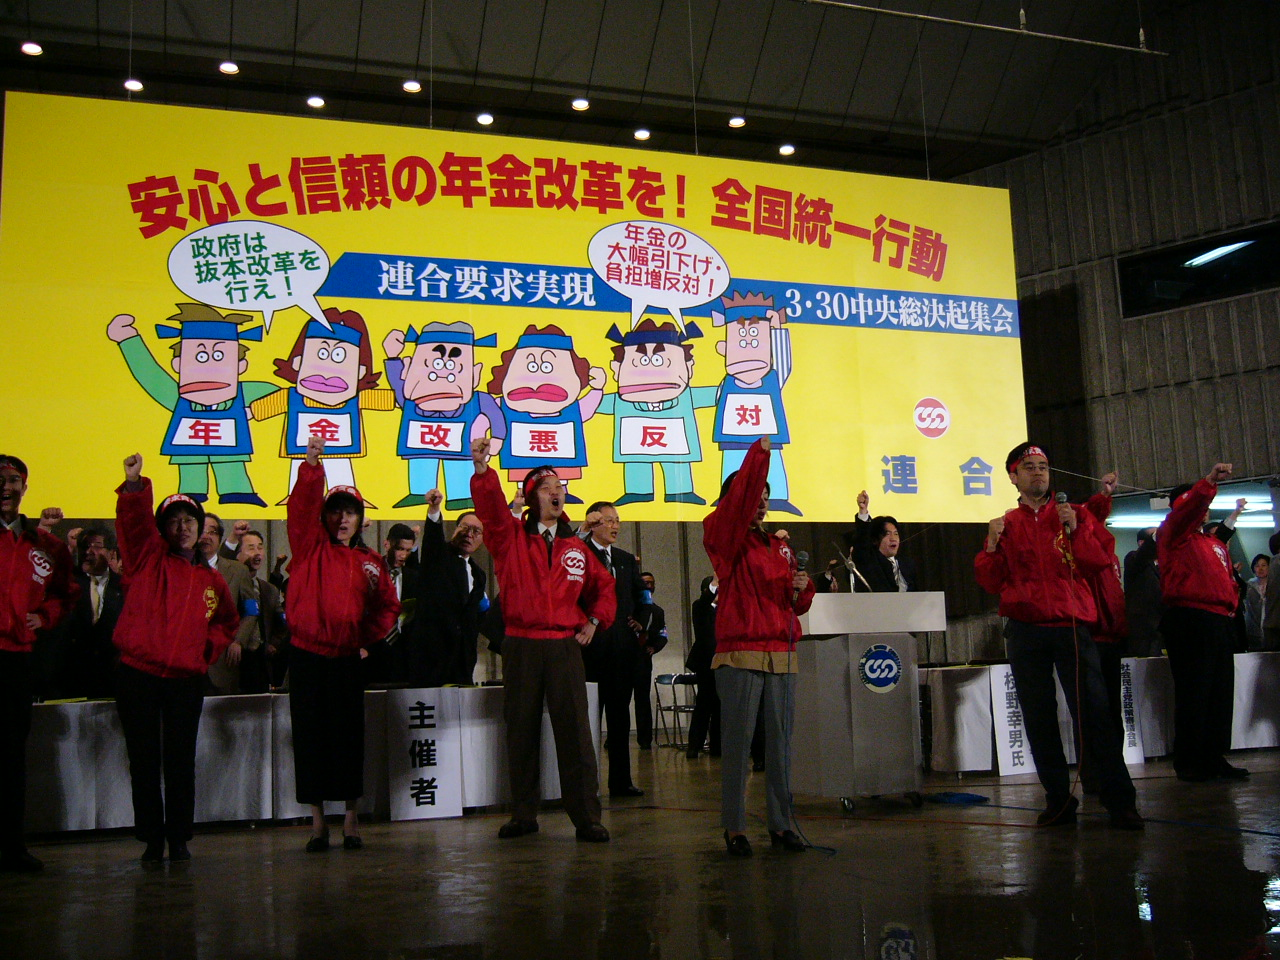 Photo: Workers from across the nation called out in unison. (March 30, Hibiya Amphitheater)